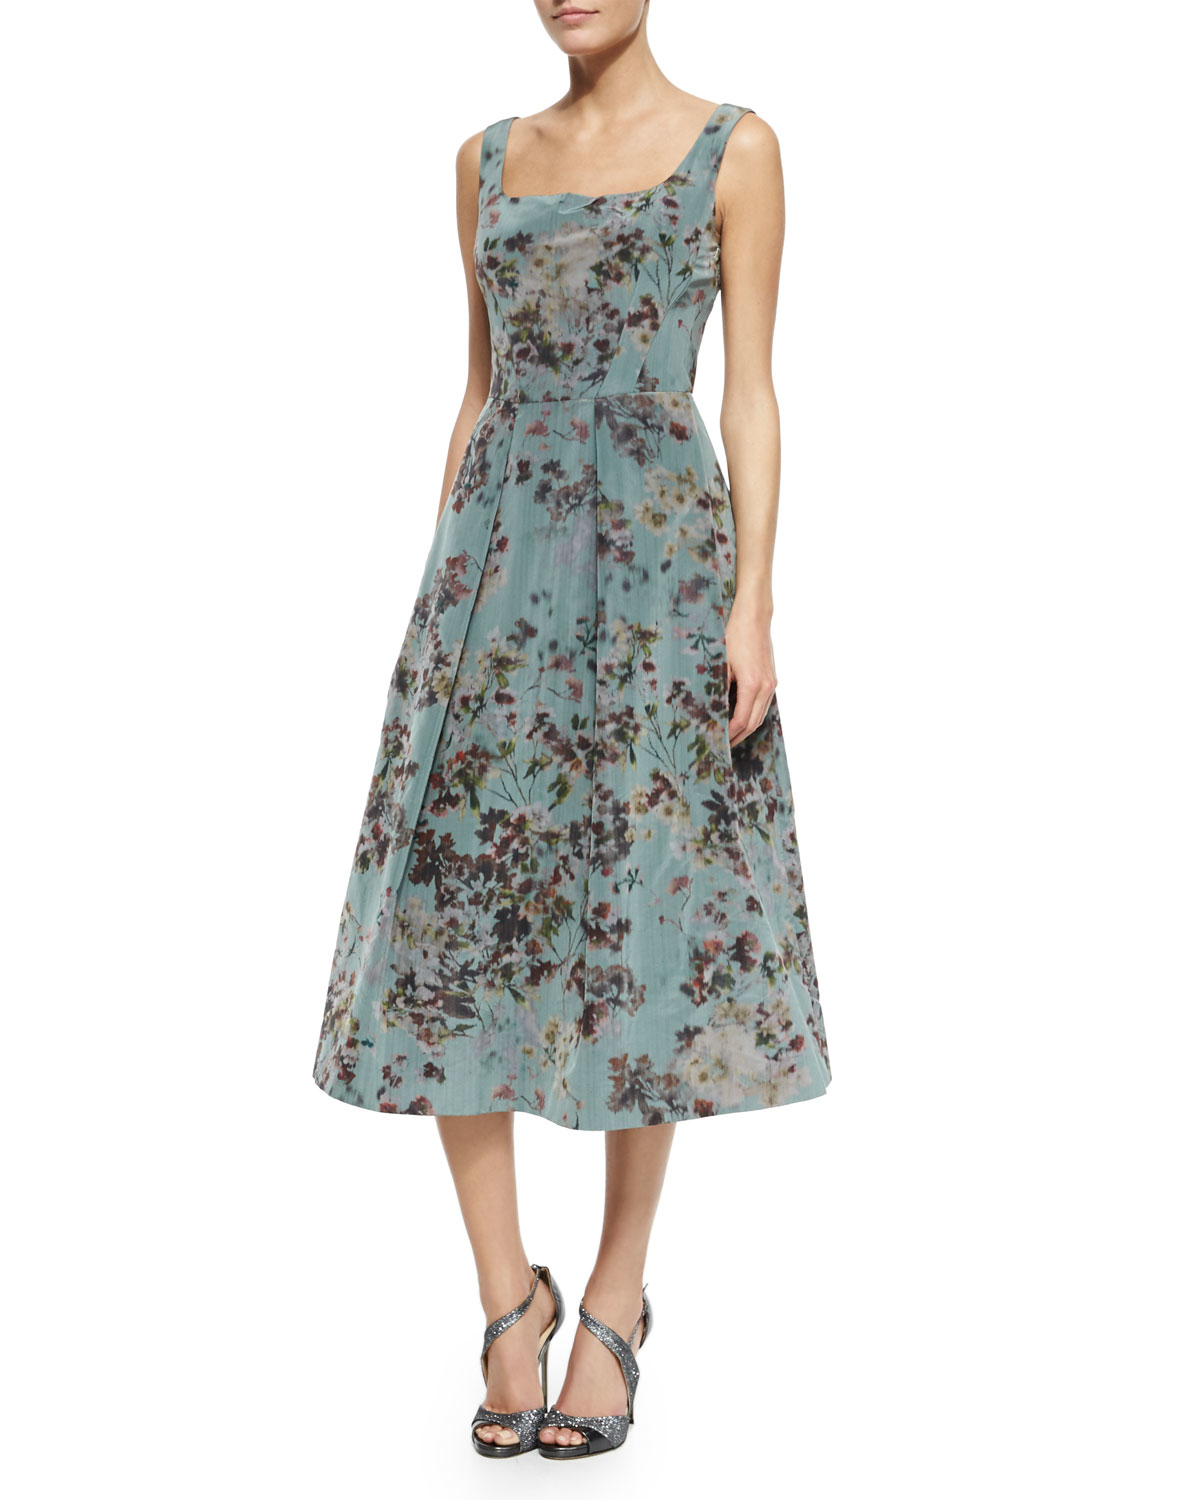 Lyst - Kay Unger Floral Sleeveless Tea-Length Cocktail Dress